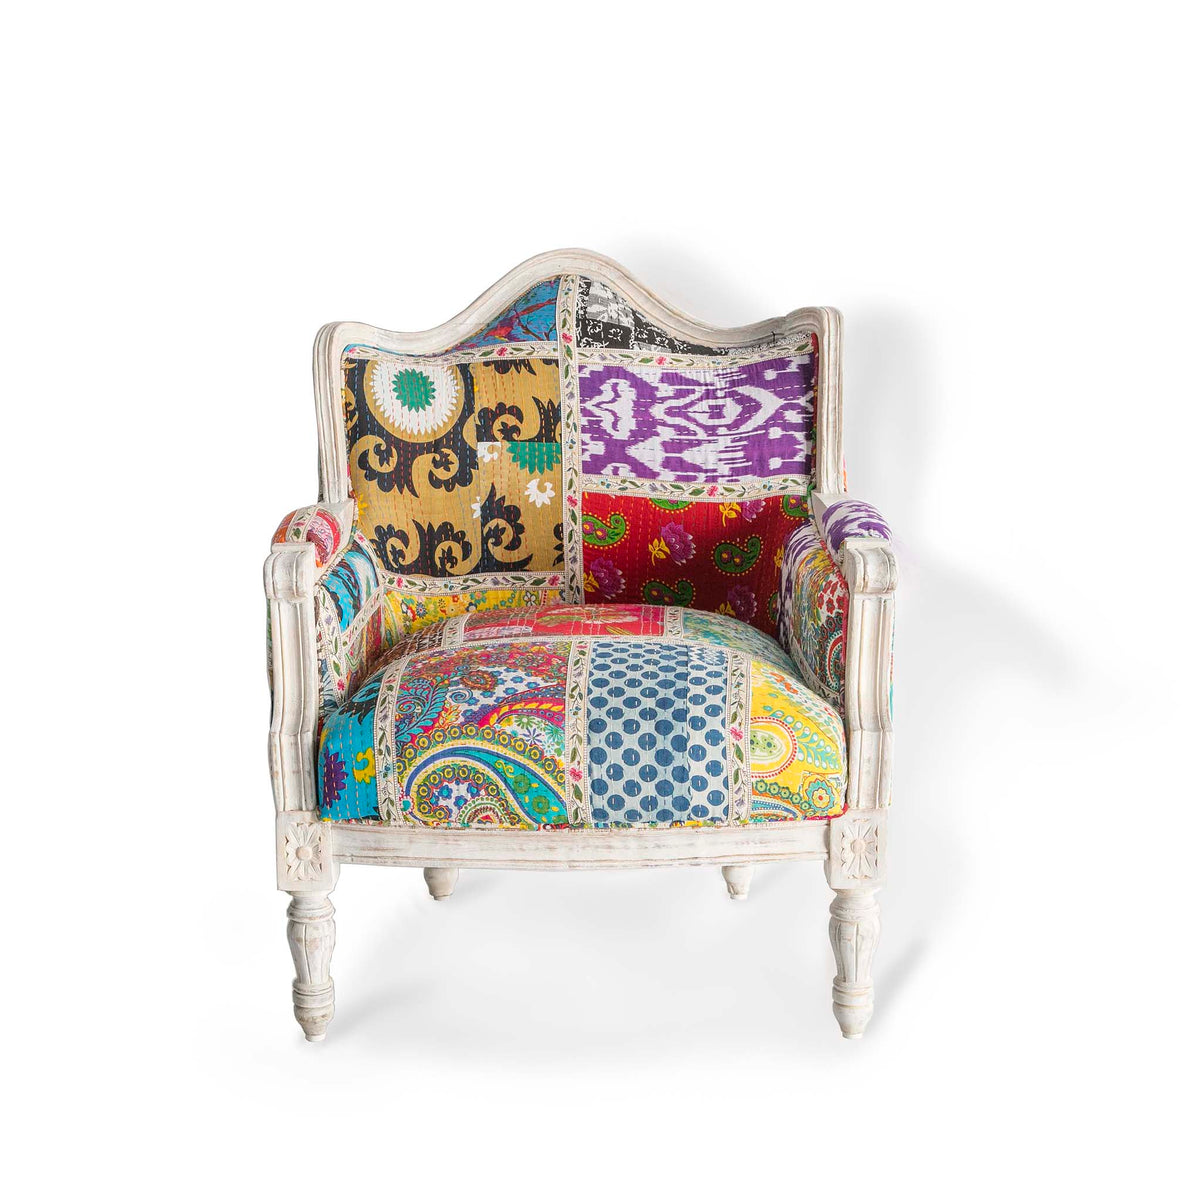 Kantha Upholstered Patchwork Chair